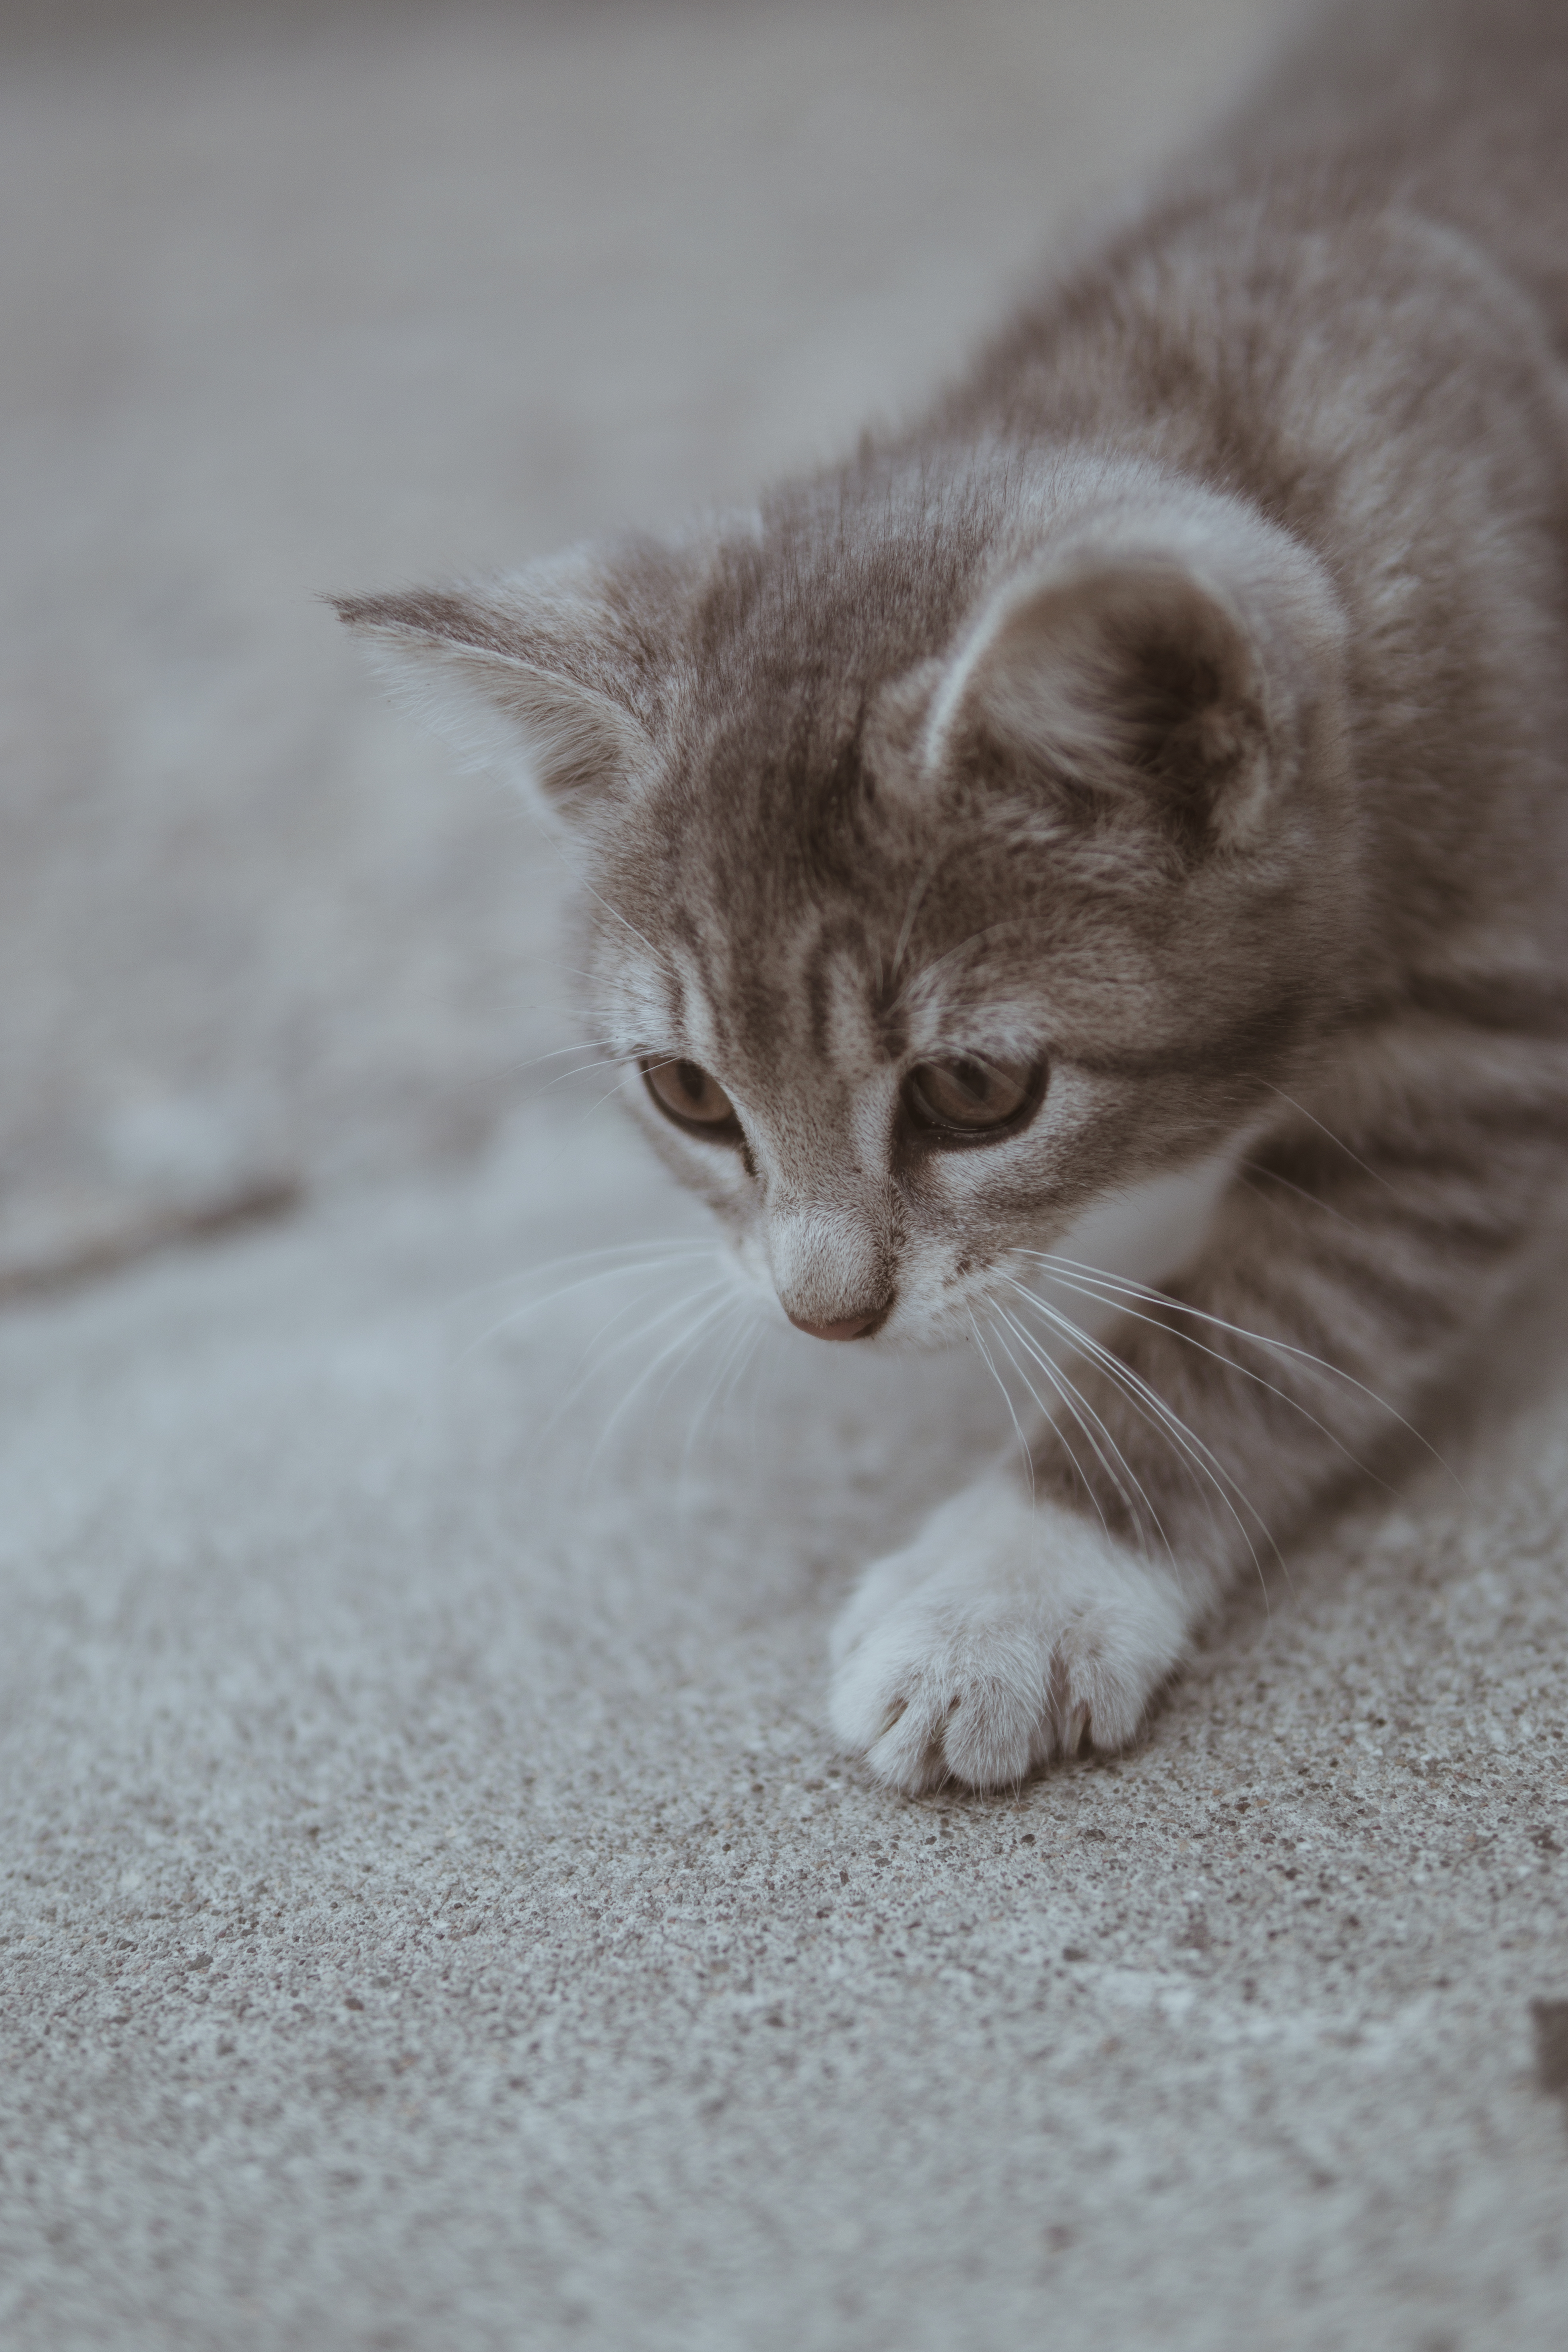 Cute Animal Wallpapers Free Grayscale Photo Of Short Furred Medium Size Cat On The